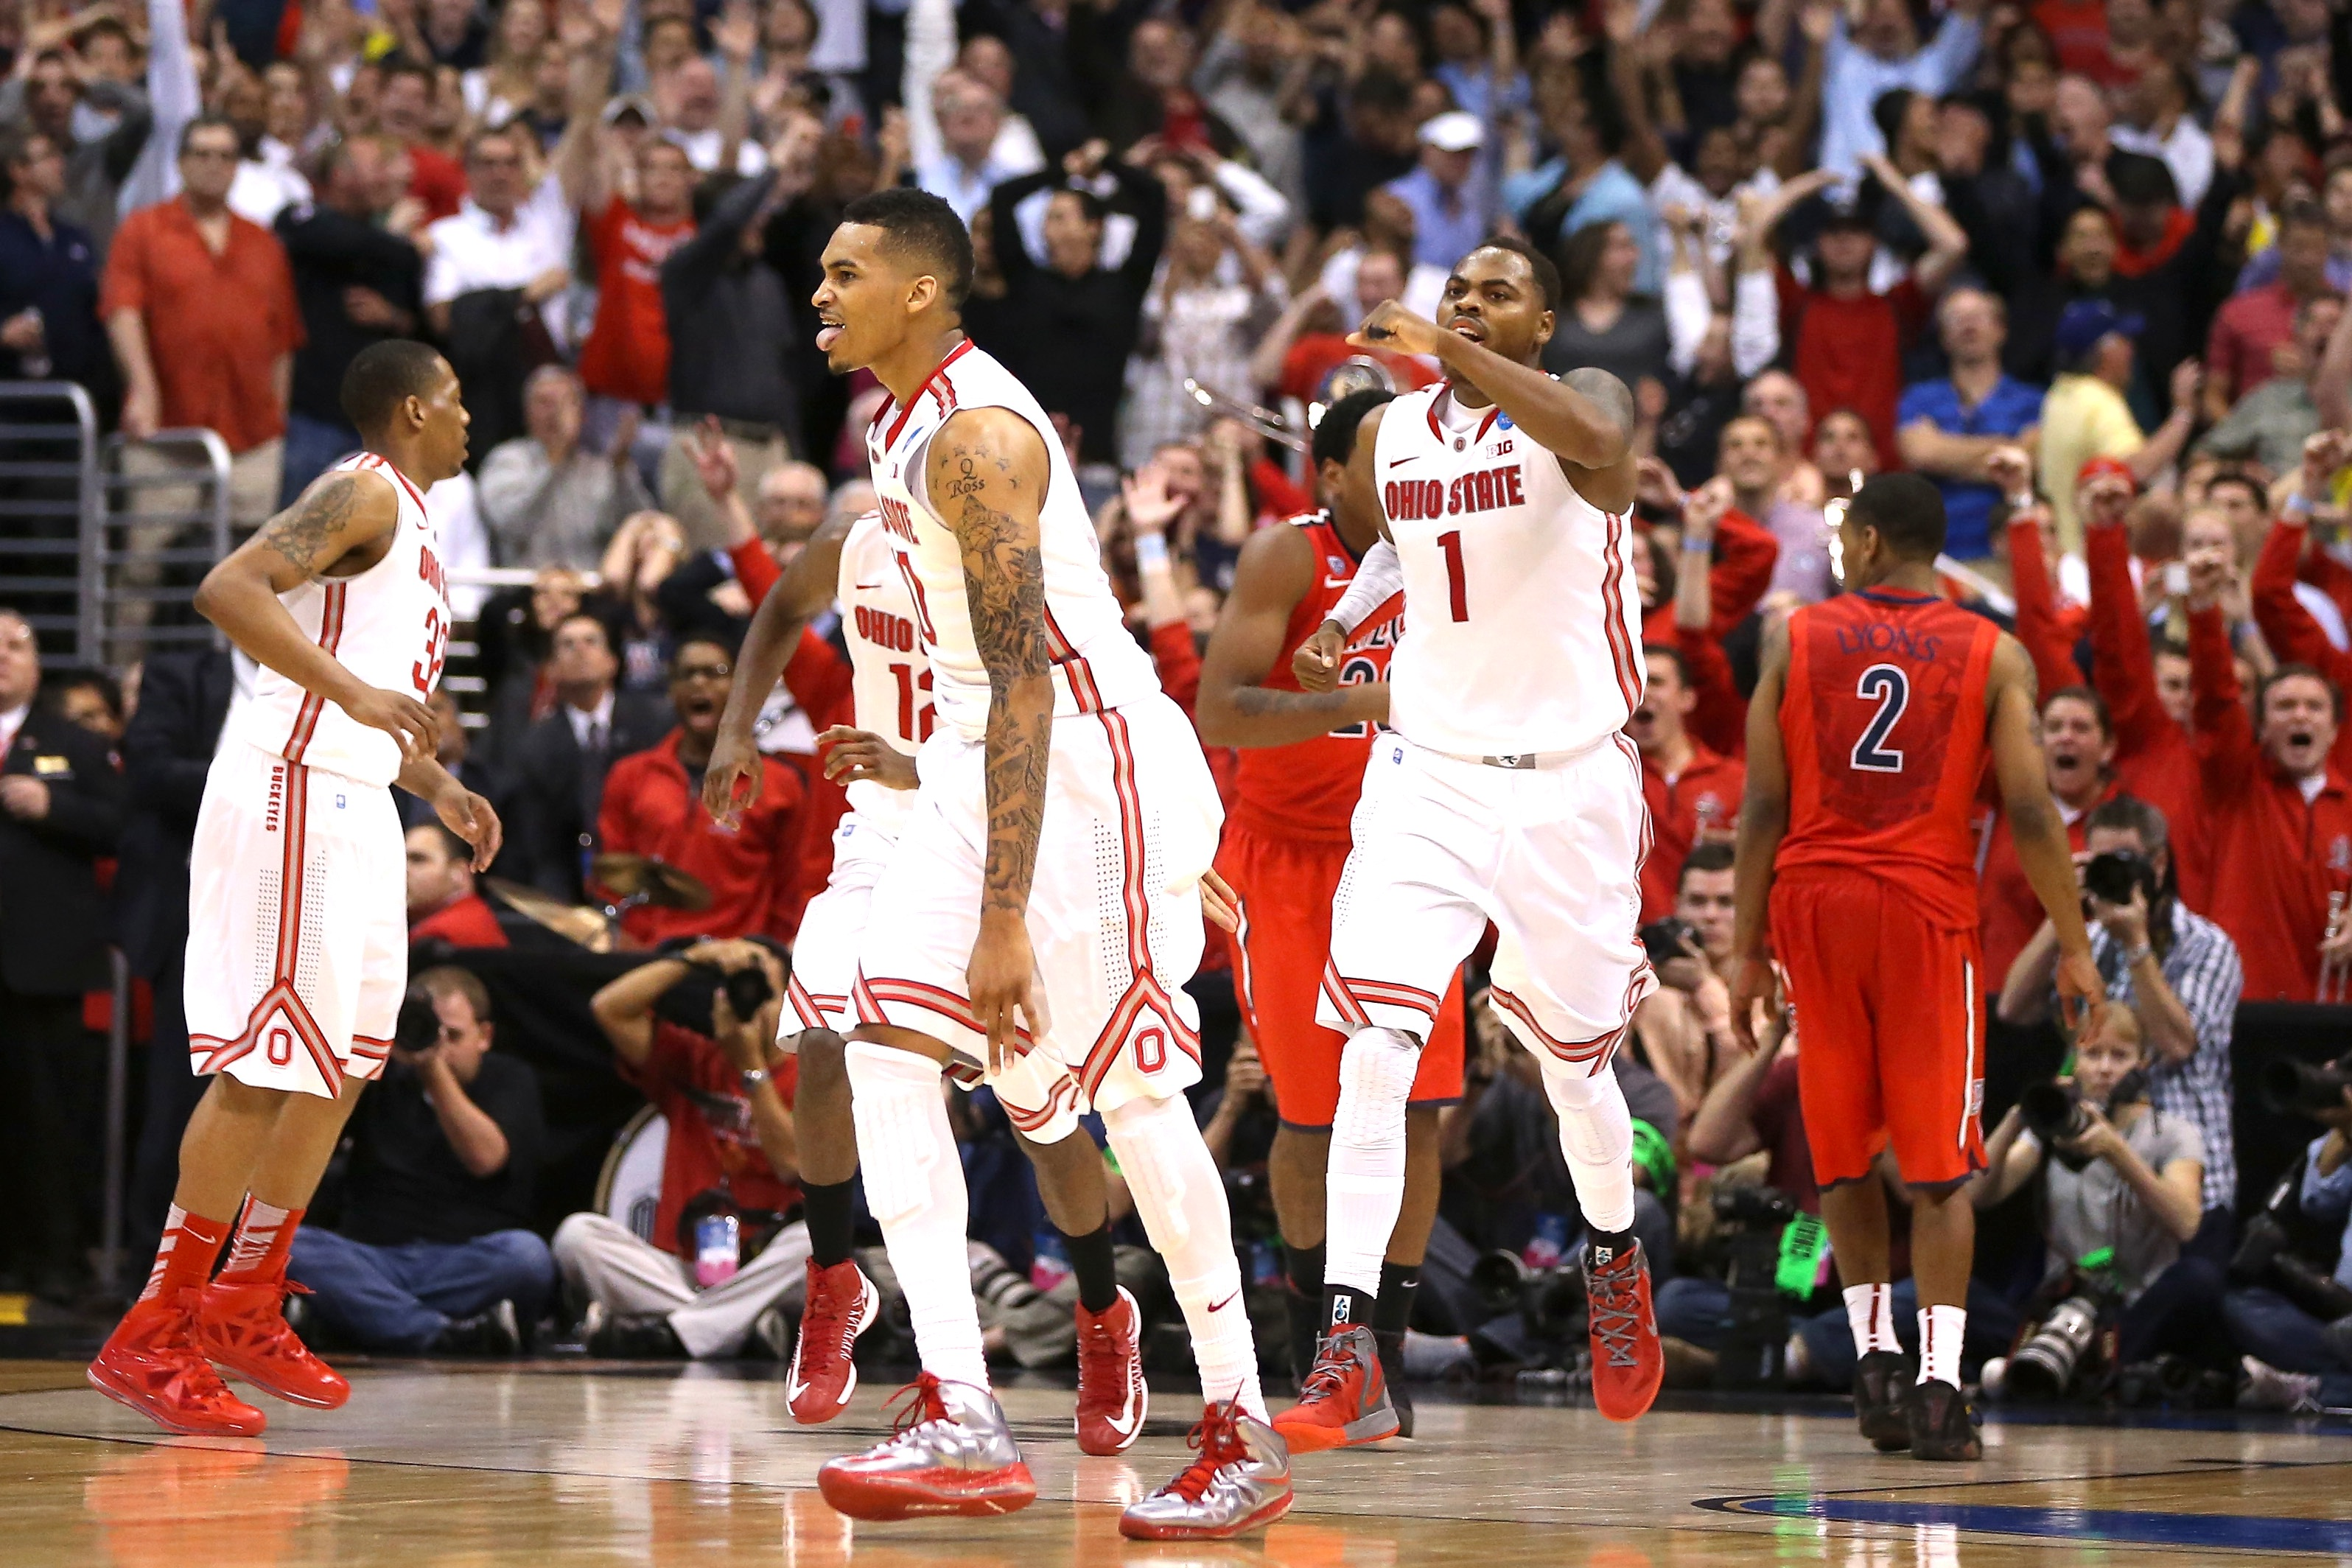 LOS ANGELES, CA - MARCH 28:  LaQuinton Ross #10 of the Ohio State Buckeyes reacts after he hits a three-pointer in the final seconds against the Arizona Wildcats during the West Regional of the 2013 NCAA Men's Basketball Tournament at Staples Center on March 28, 2013 in Los Angeles, California.  (Photo by Jeff Gross/Getty Images)